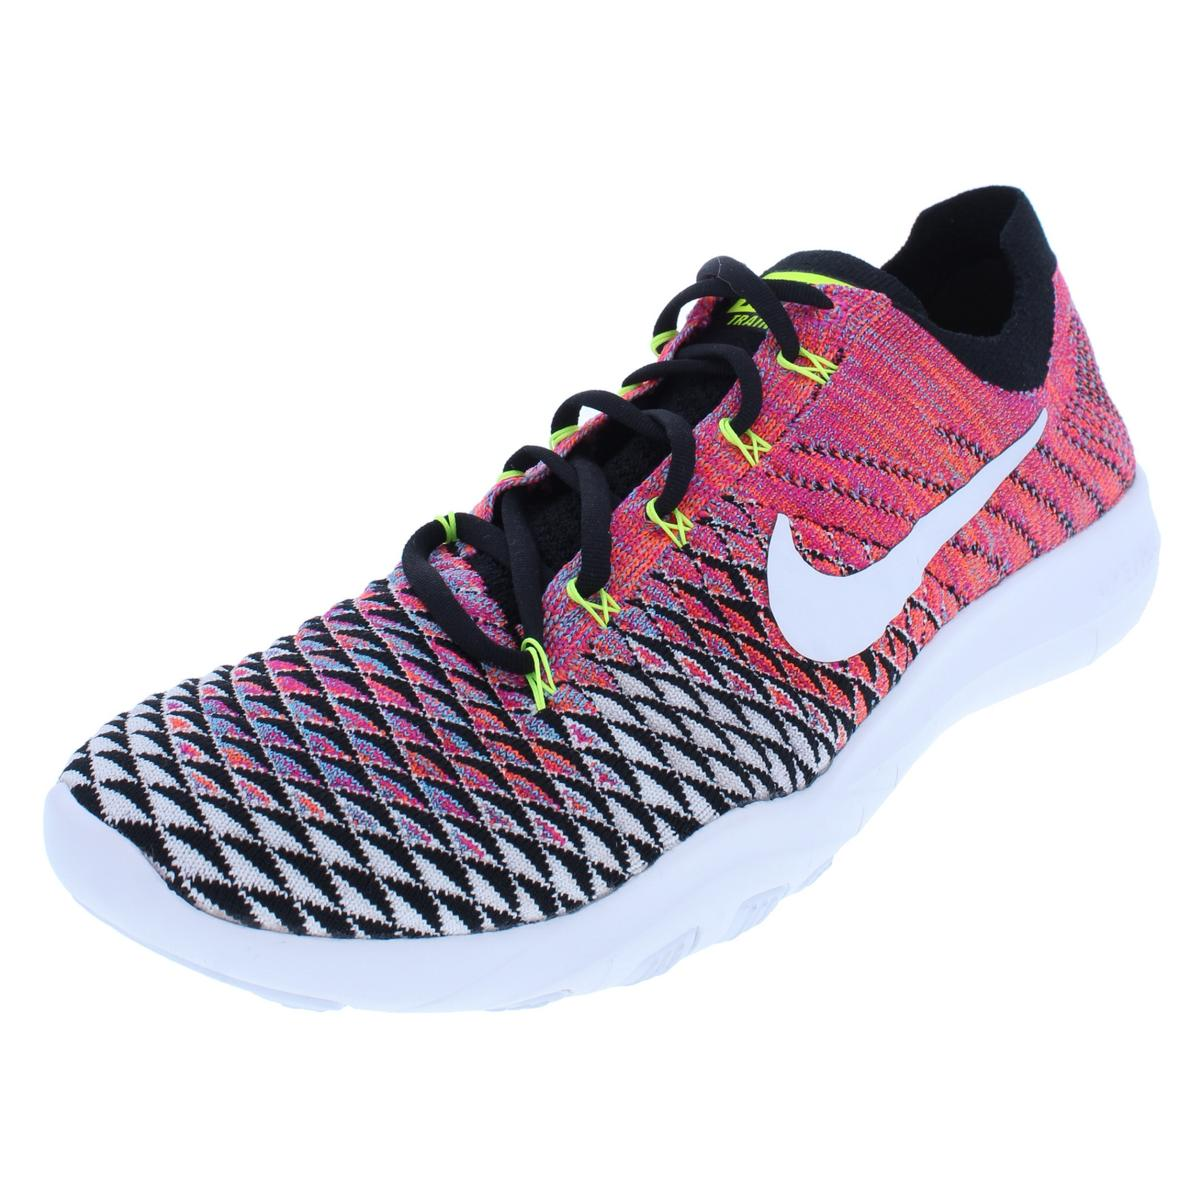 73a119851822 Details about Nike Womens Free TR Flyknit 2 Pink Running Shoes 6 Medium  (B